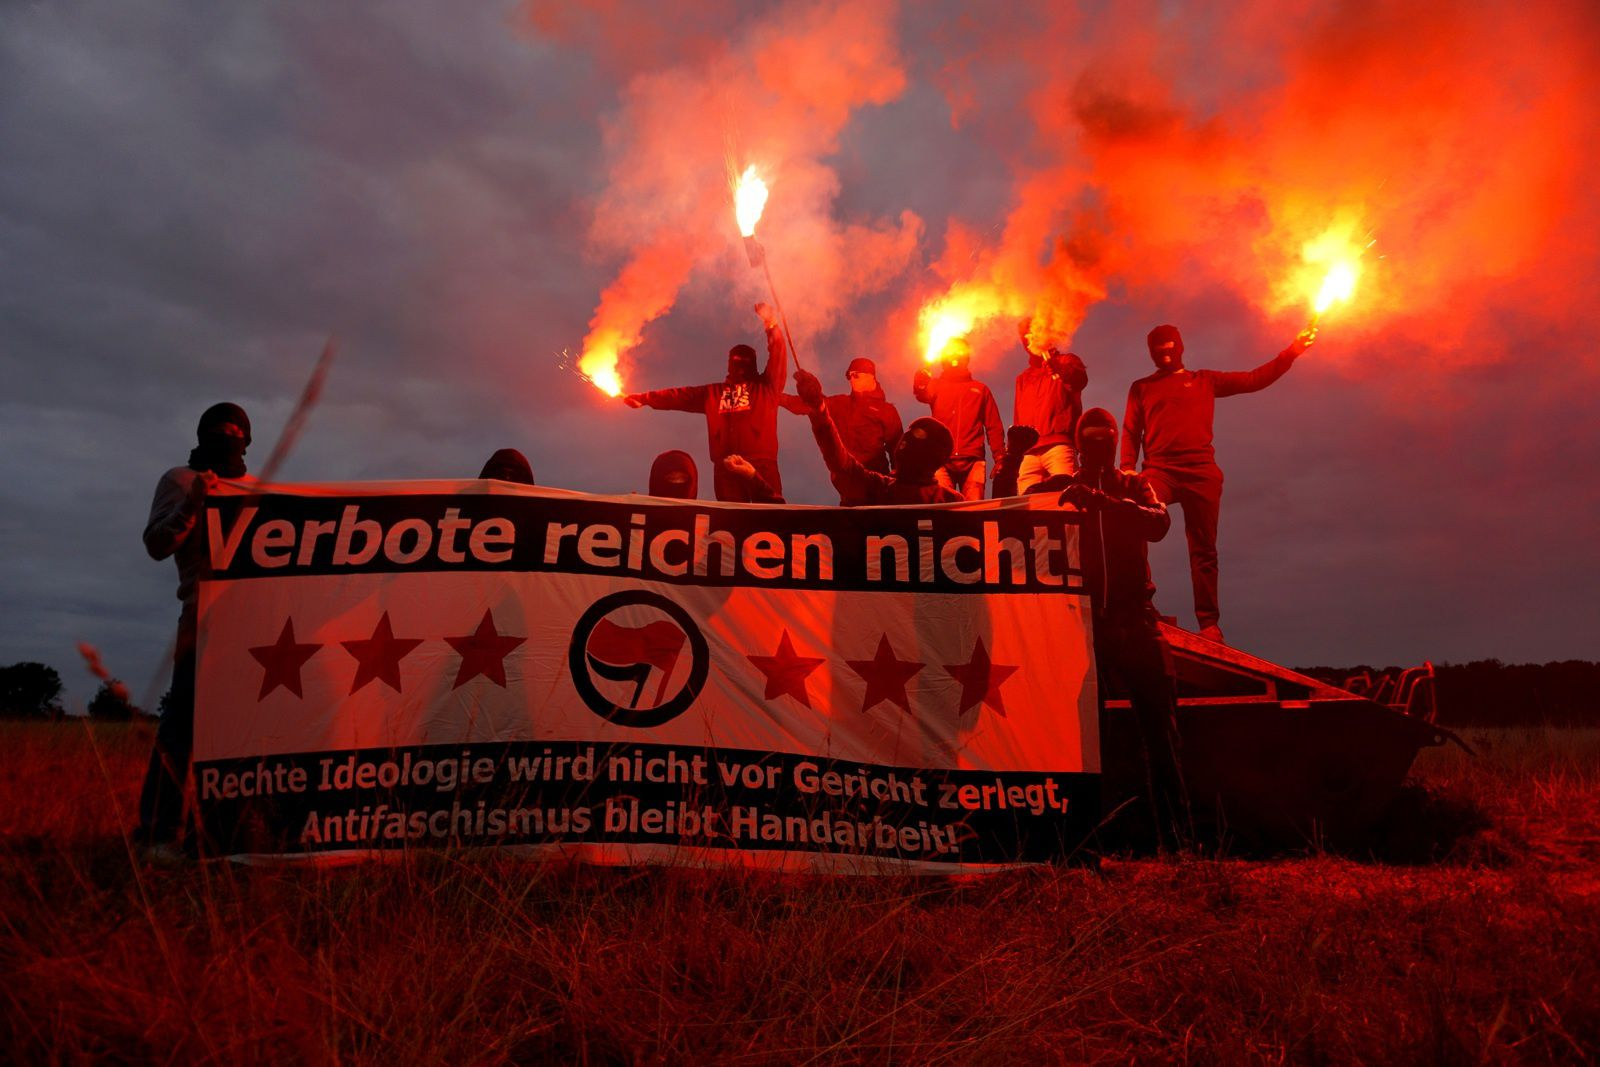 L'action antifasciste en Allemagne